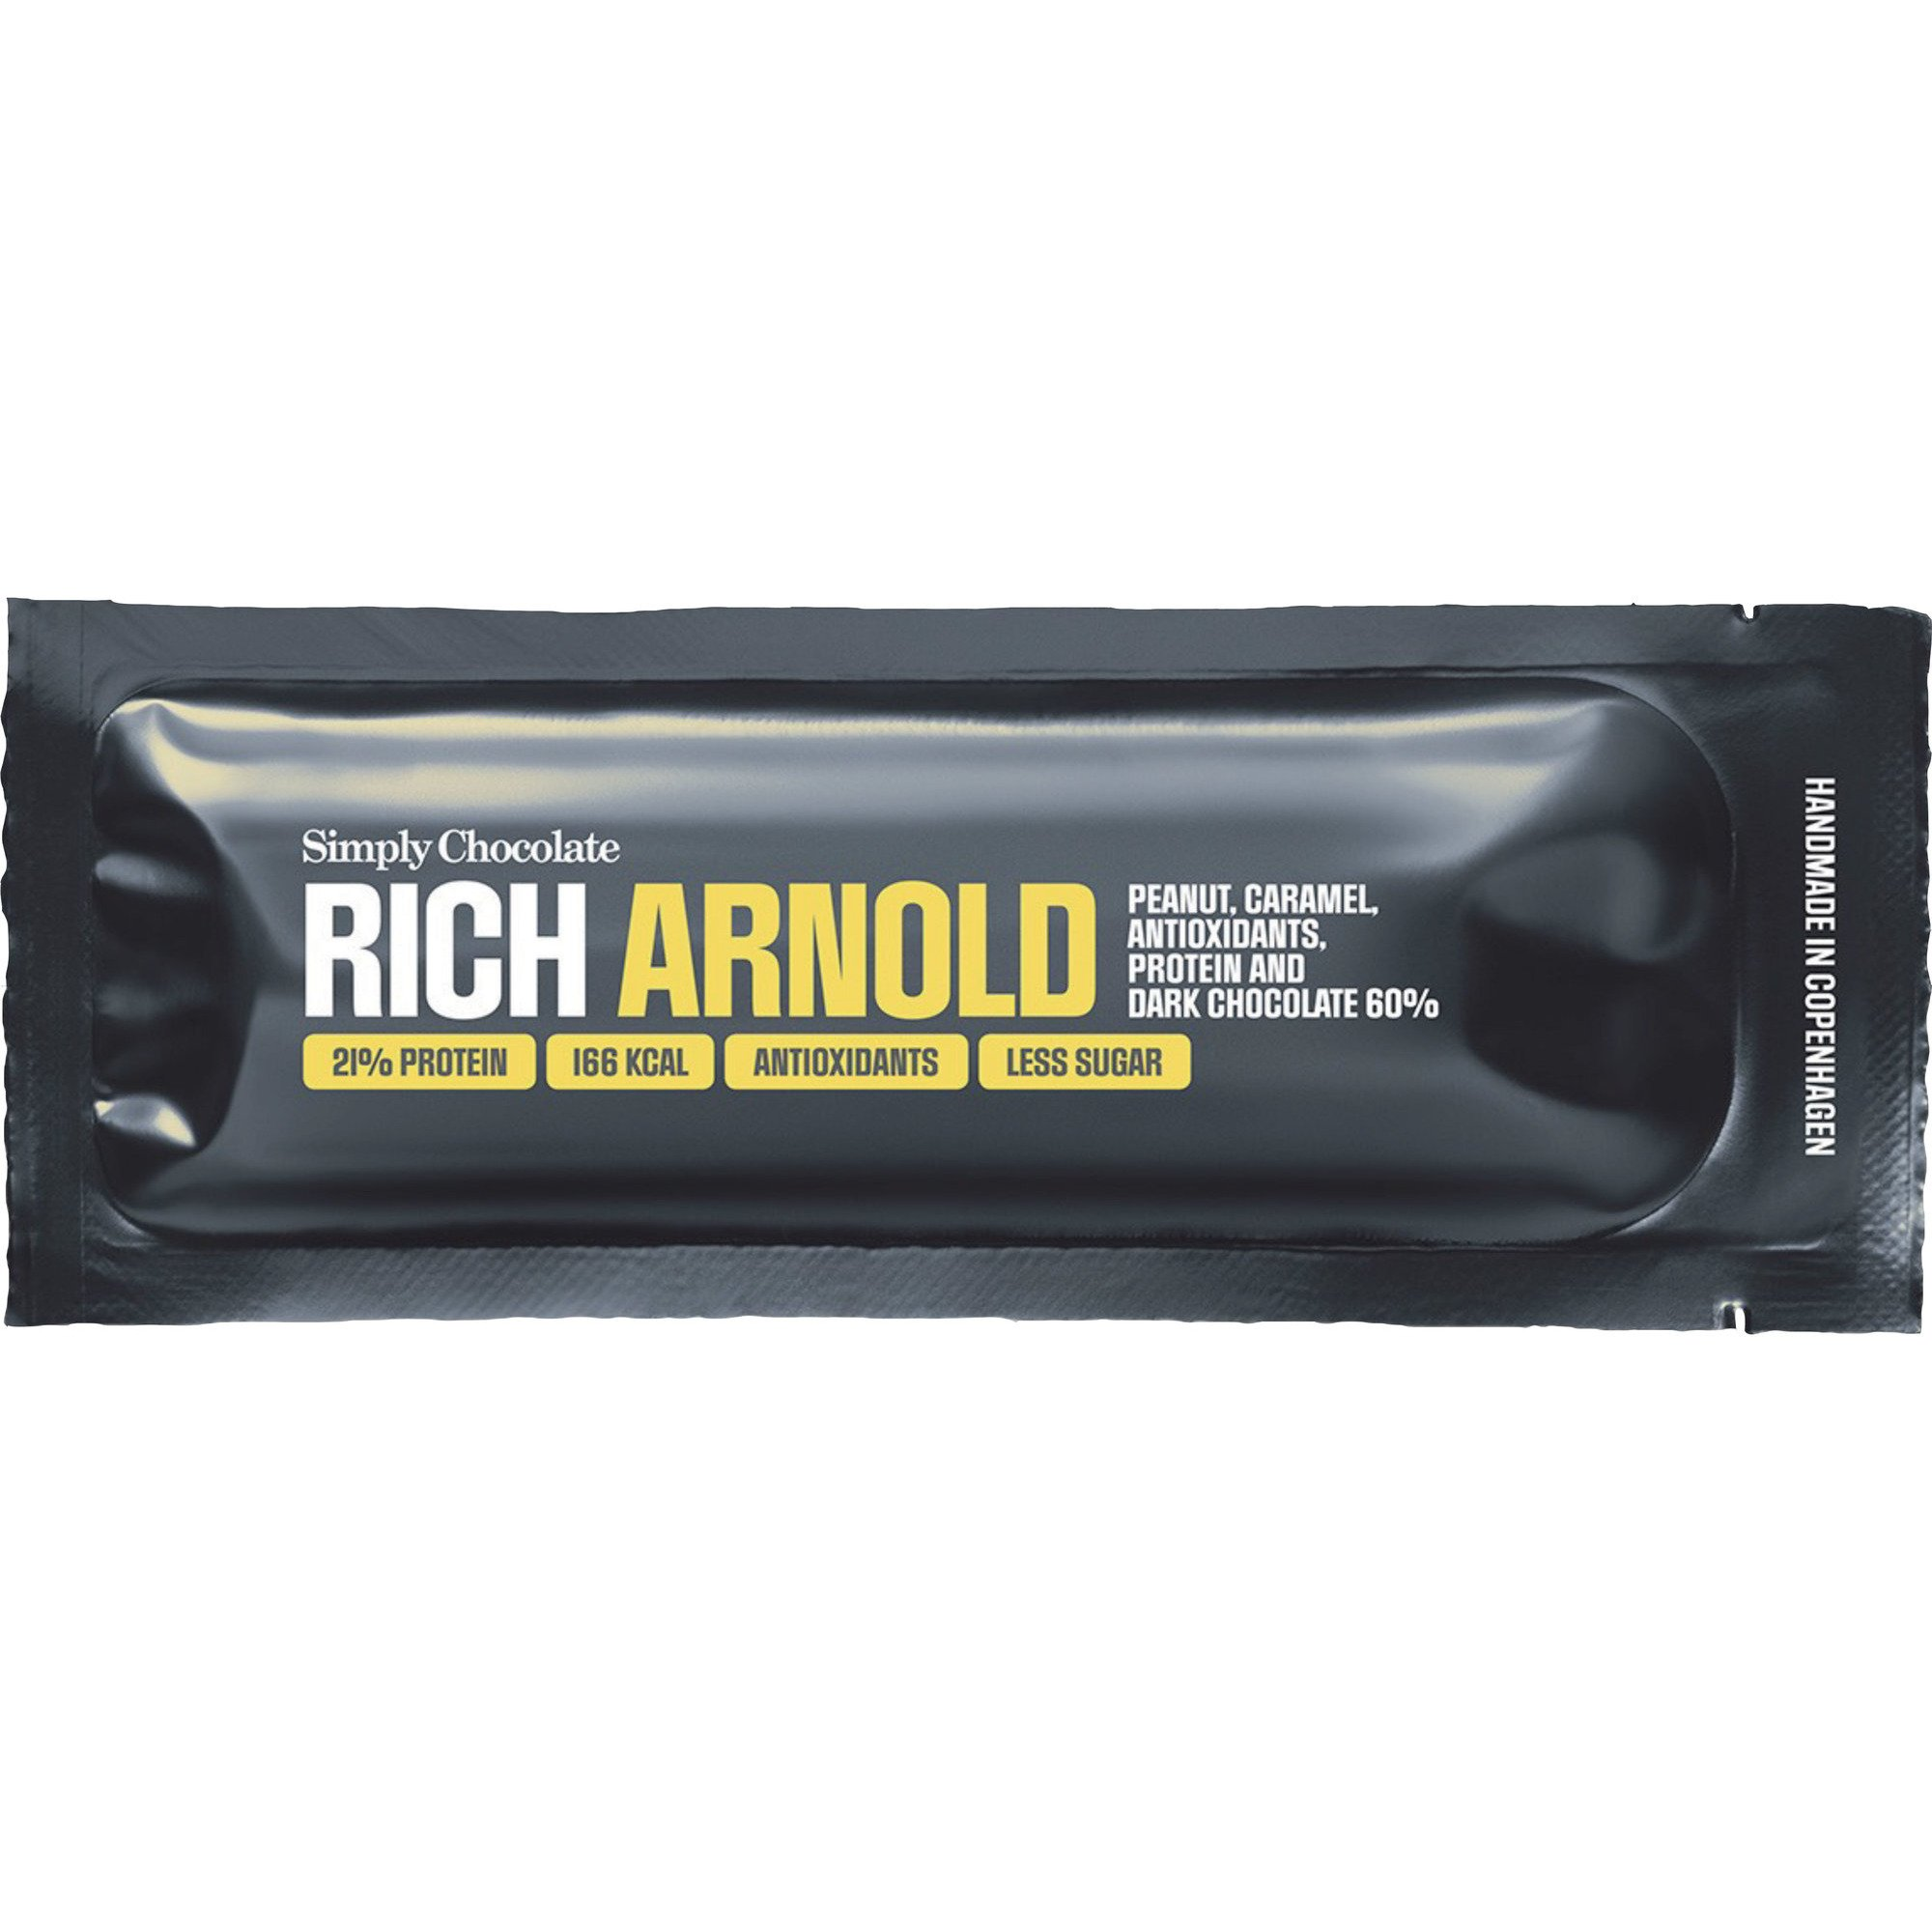 Simply Chocolate Rich Arnold